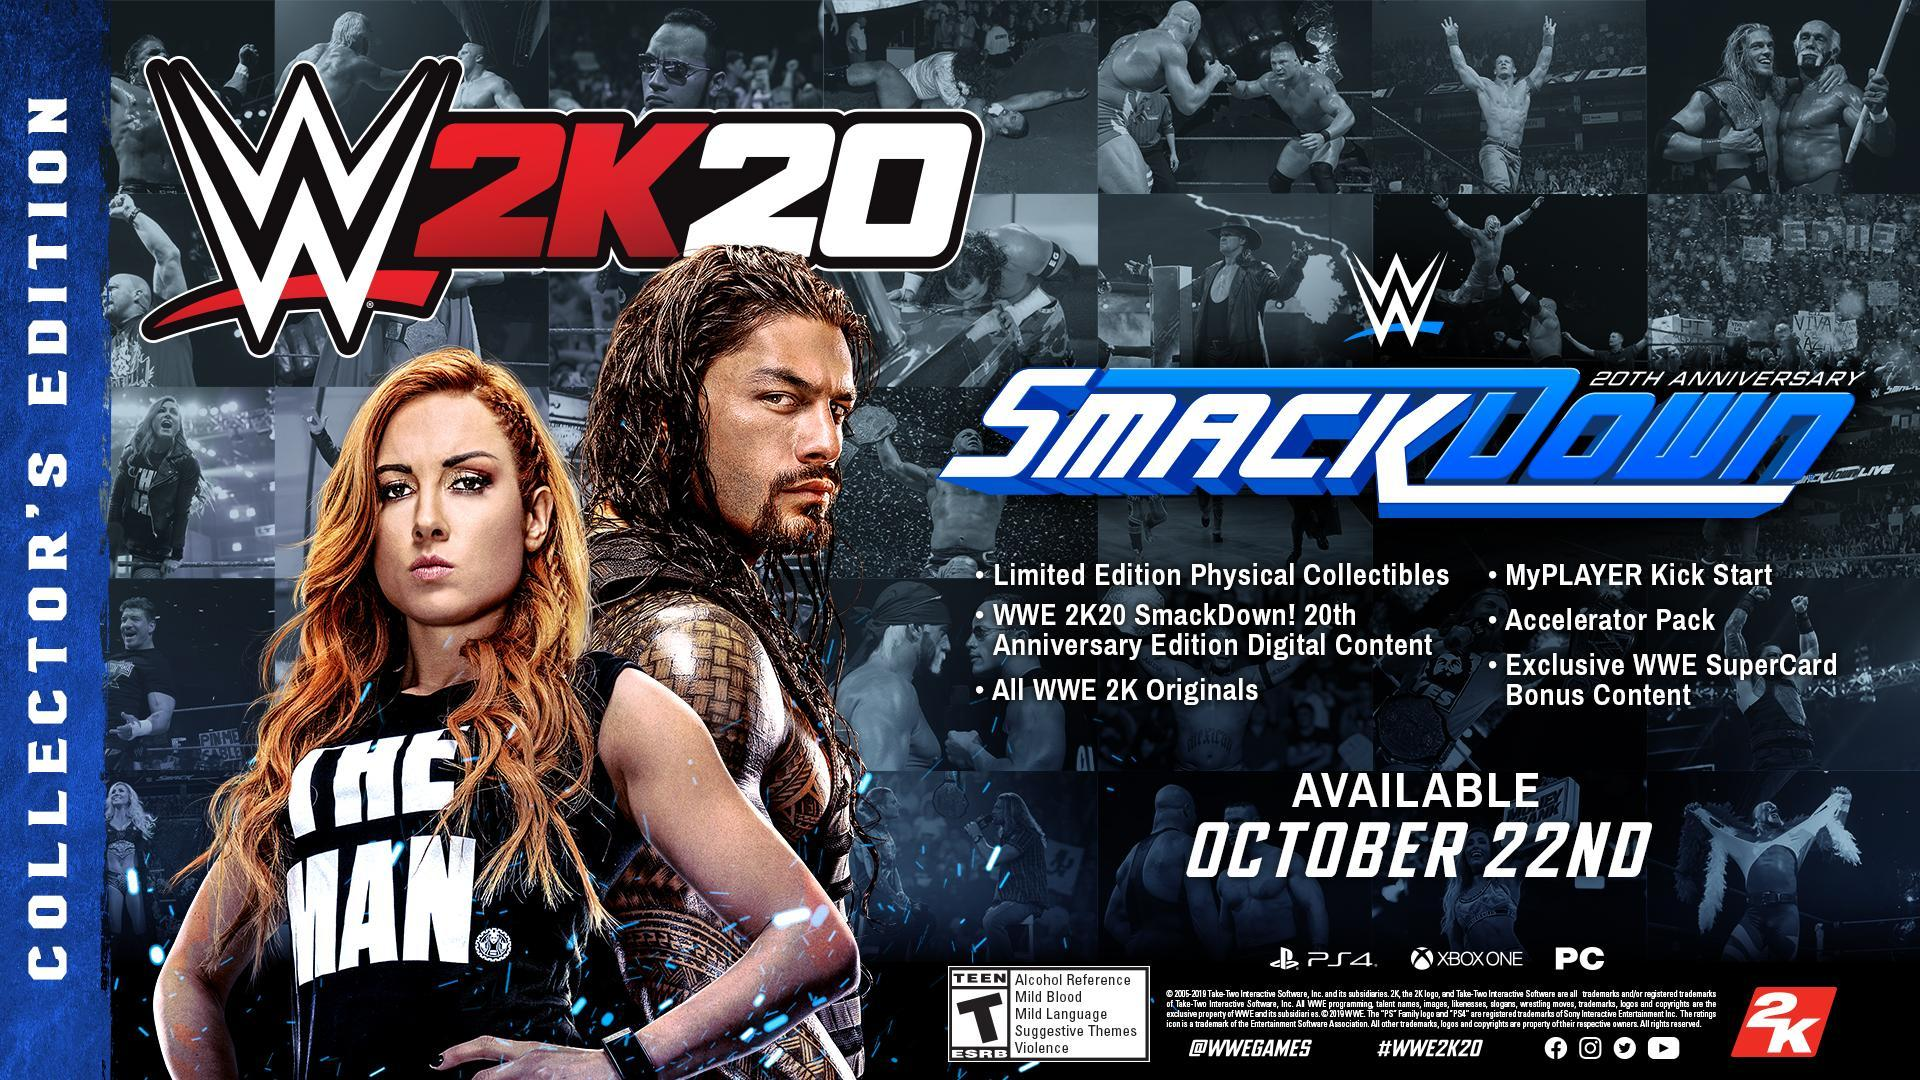 WWE 2K20 Editions Collector's SmackDown Edition